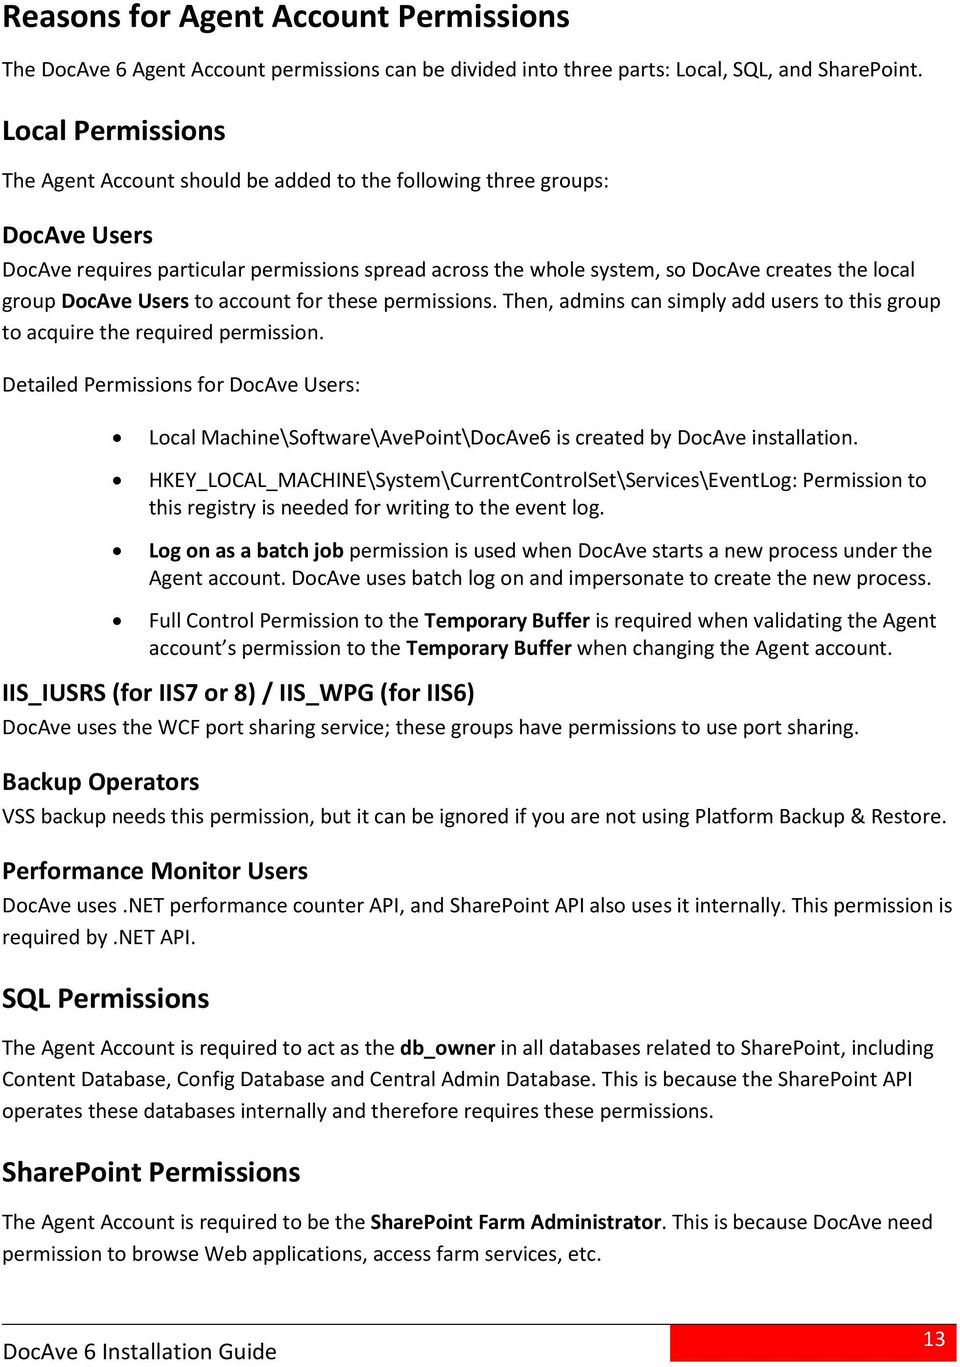 Pdf docave 6 user guide 28 pages al s tech tips docave docave 6 user guide docave 6 installation pdf fandeluxe Choice Image